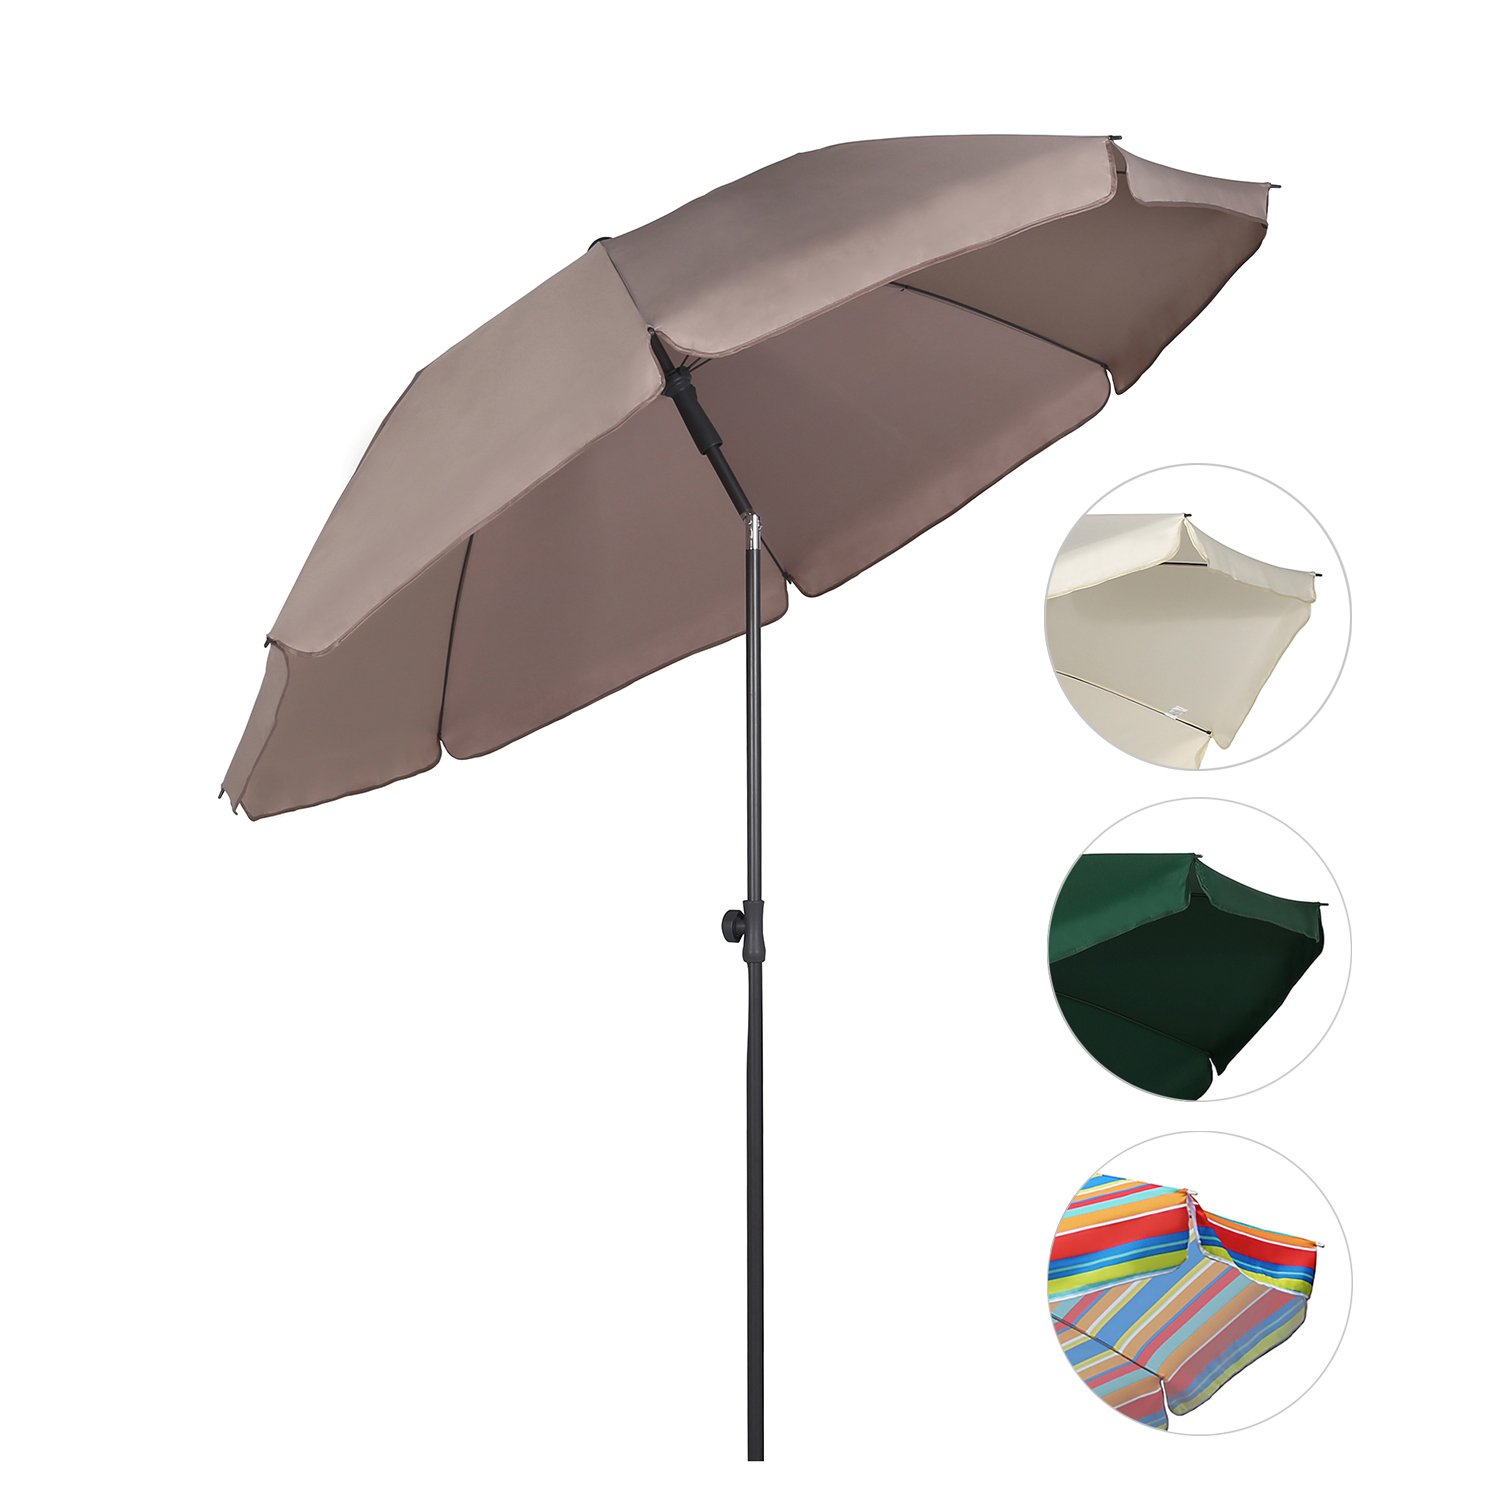 Impressionnant De Parasol Rectangulaire Inclinable